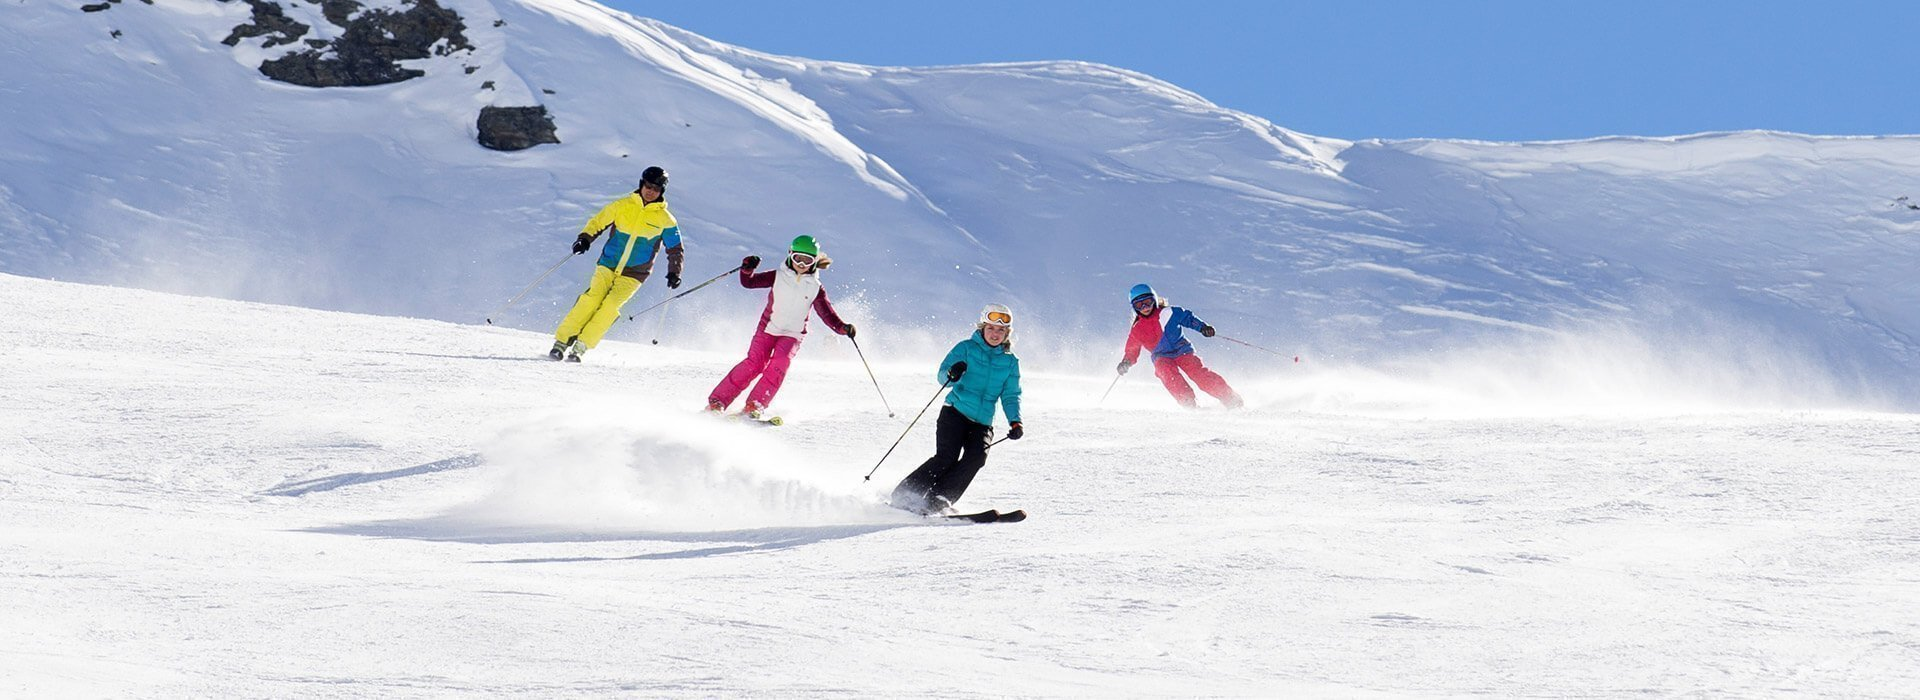 South Tyrol ski areas - Rosskopf